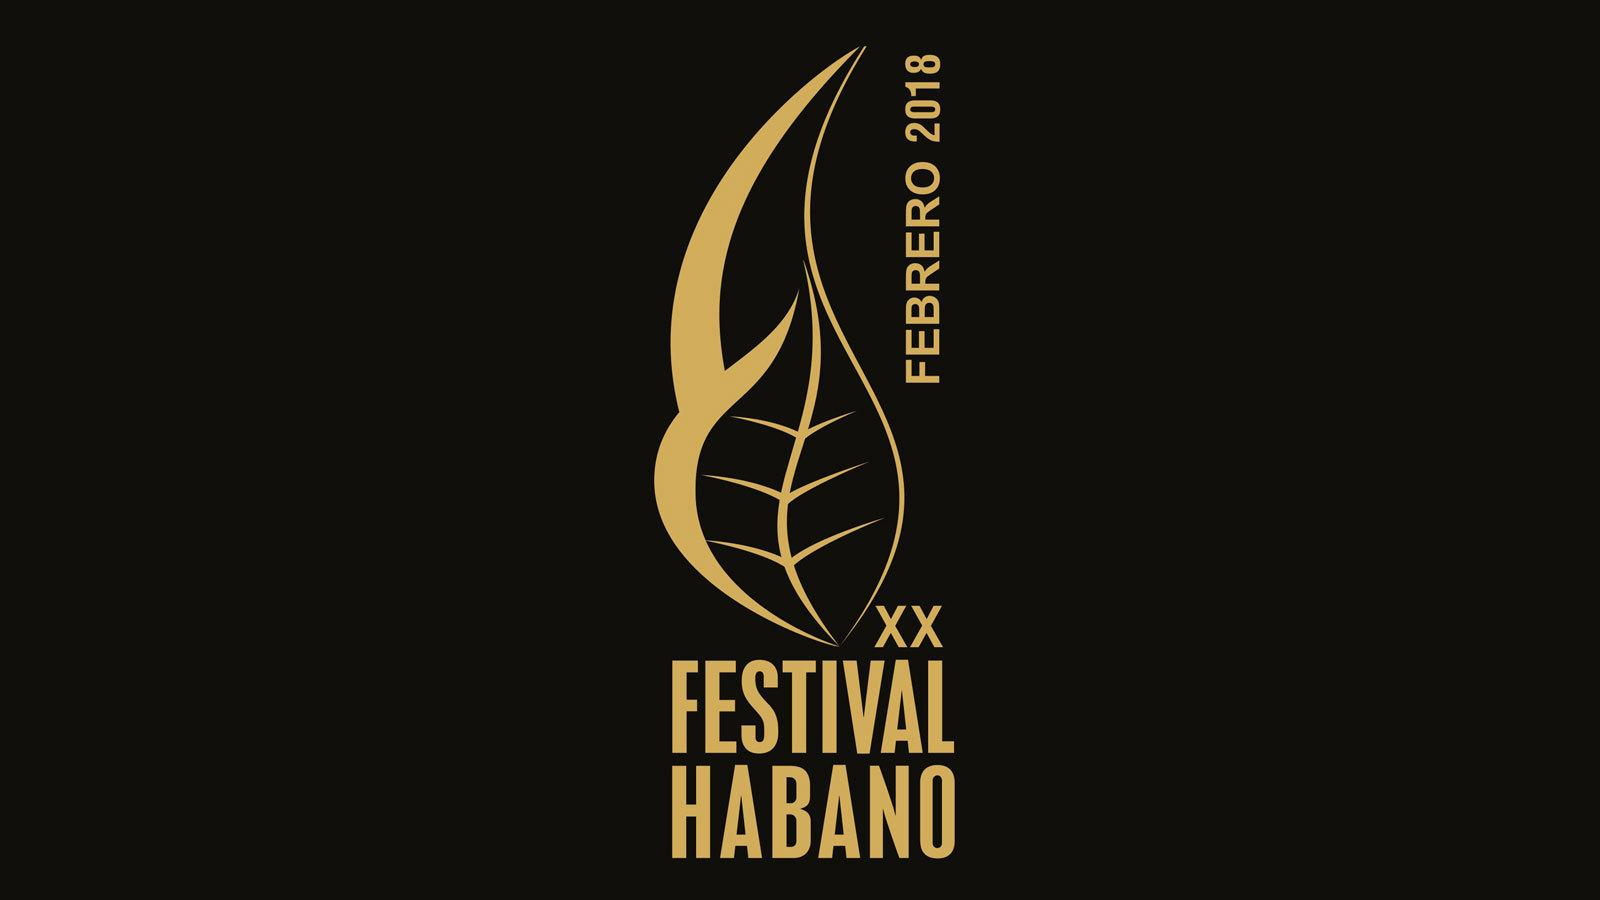 The Lineup—20th Anniversary Habanos Festival